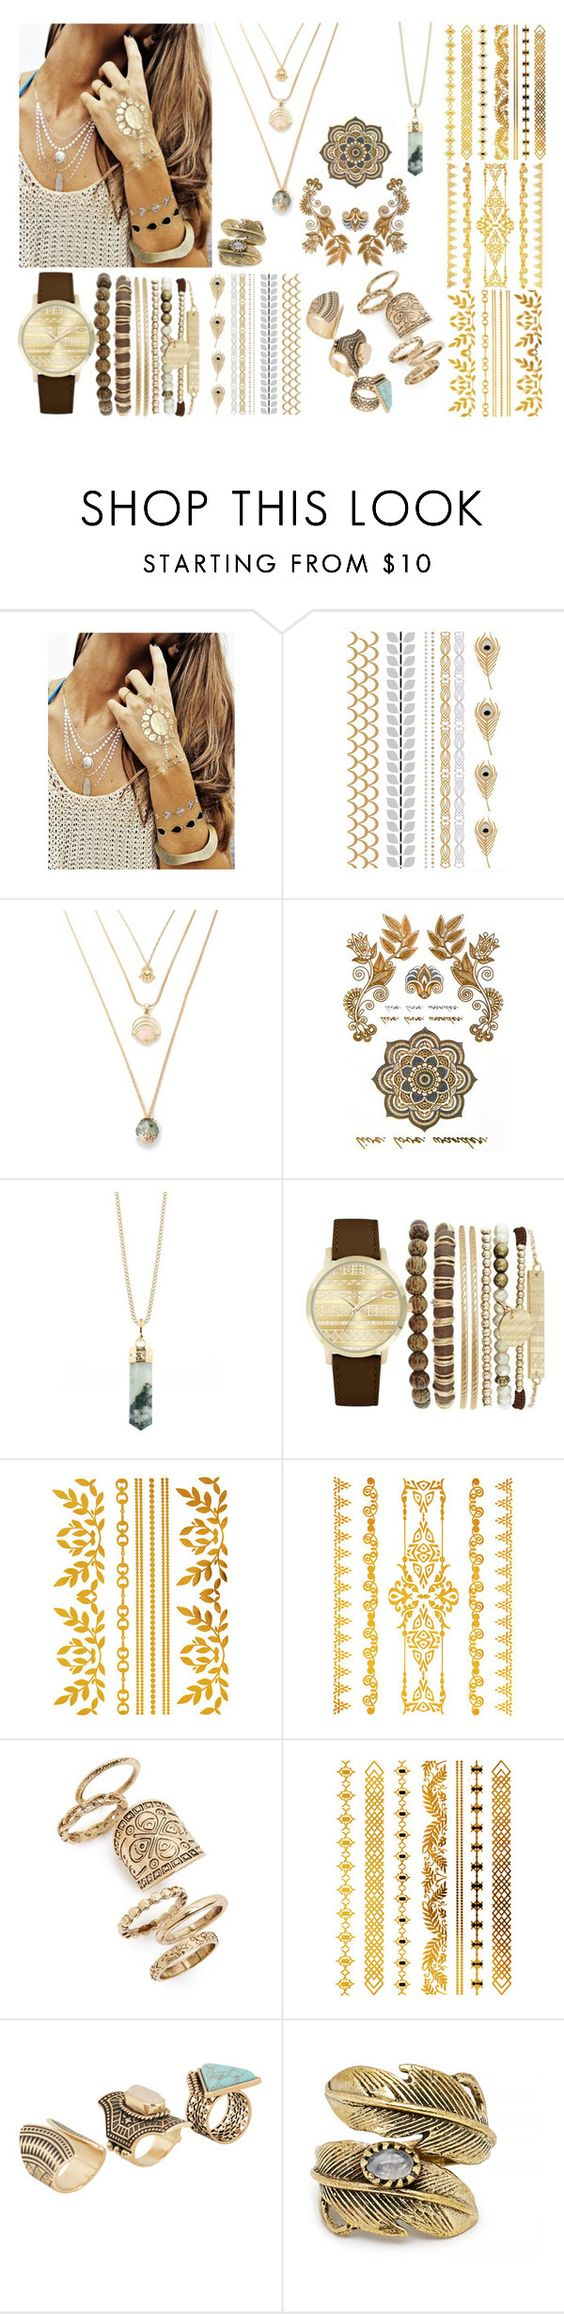 """Temporary Tattoos"" by stavrolga ❤ liked on Polyvore featuring beauty, Flash Tattoos, Rock 'N Rose, Jessica Carlyle, Topshop, ALDO, Natalie B, jewellery, polyvoreeditorial and polyvorecontest"